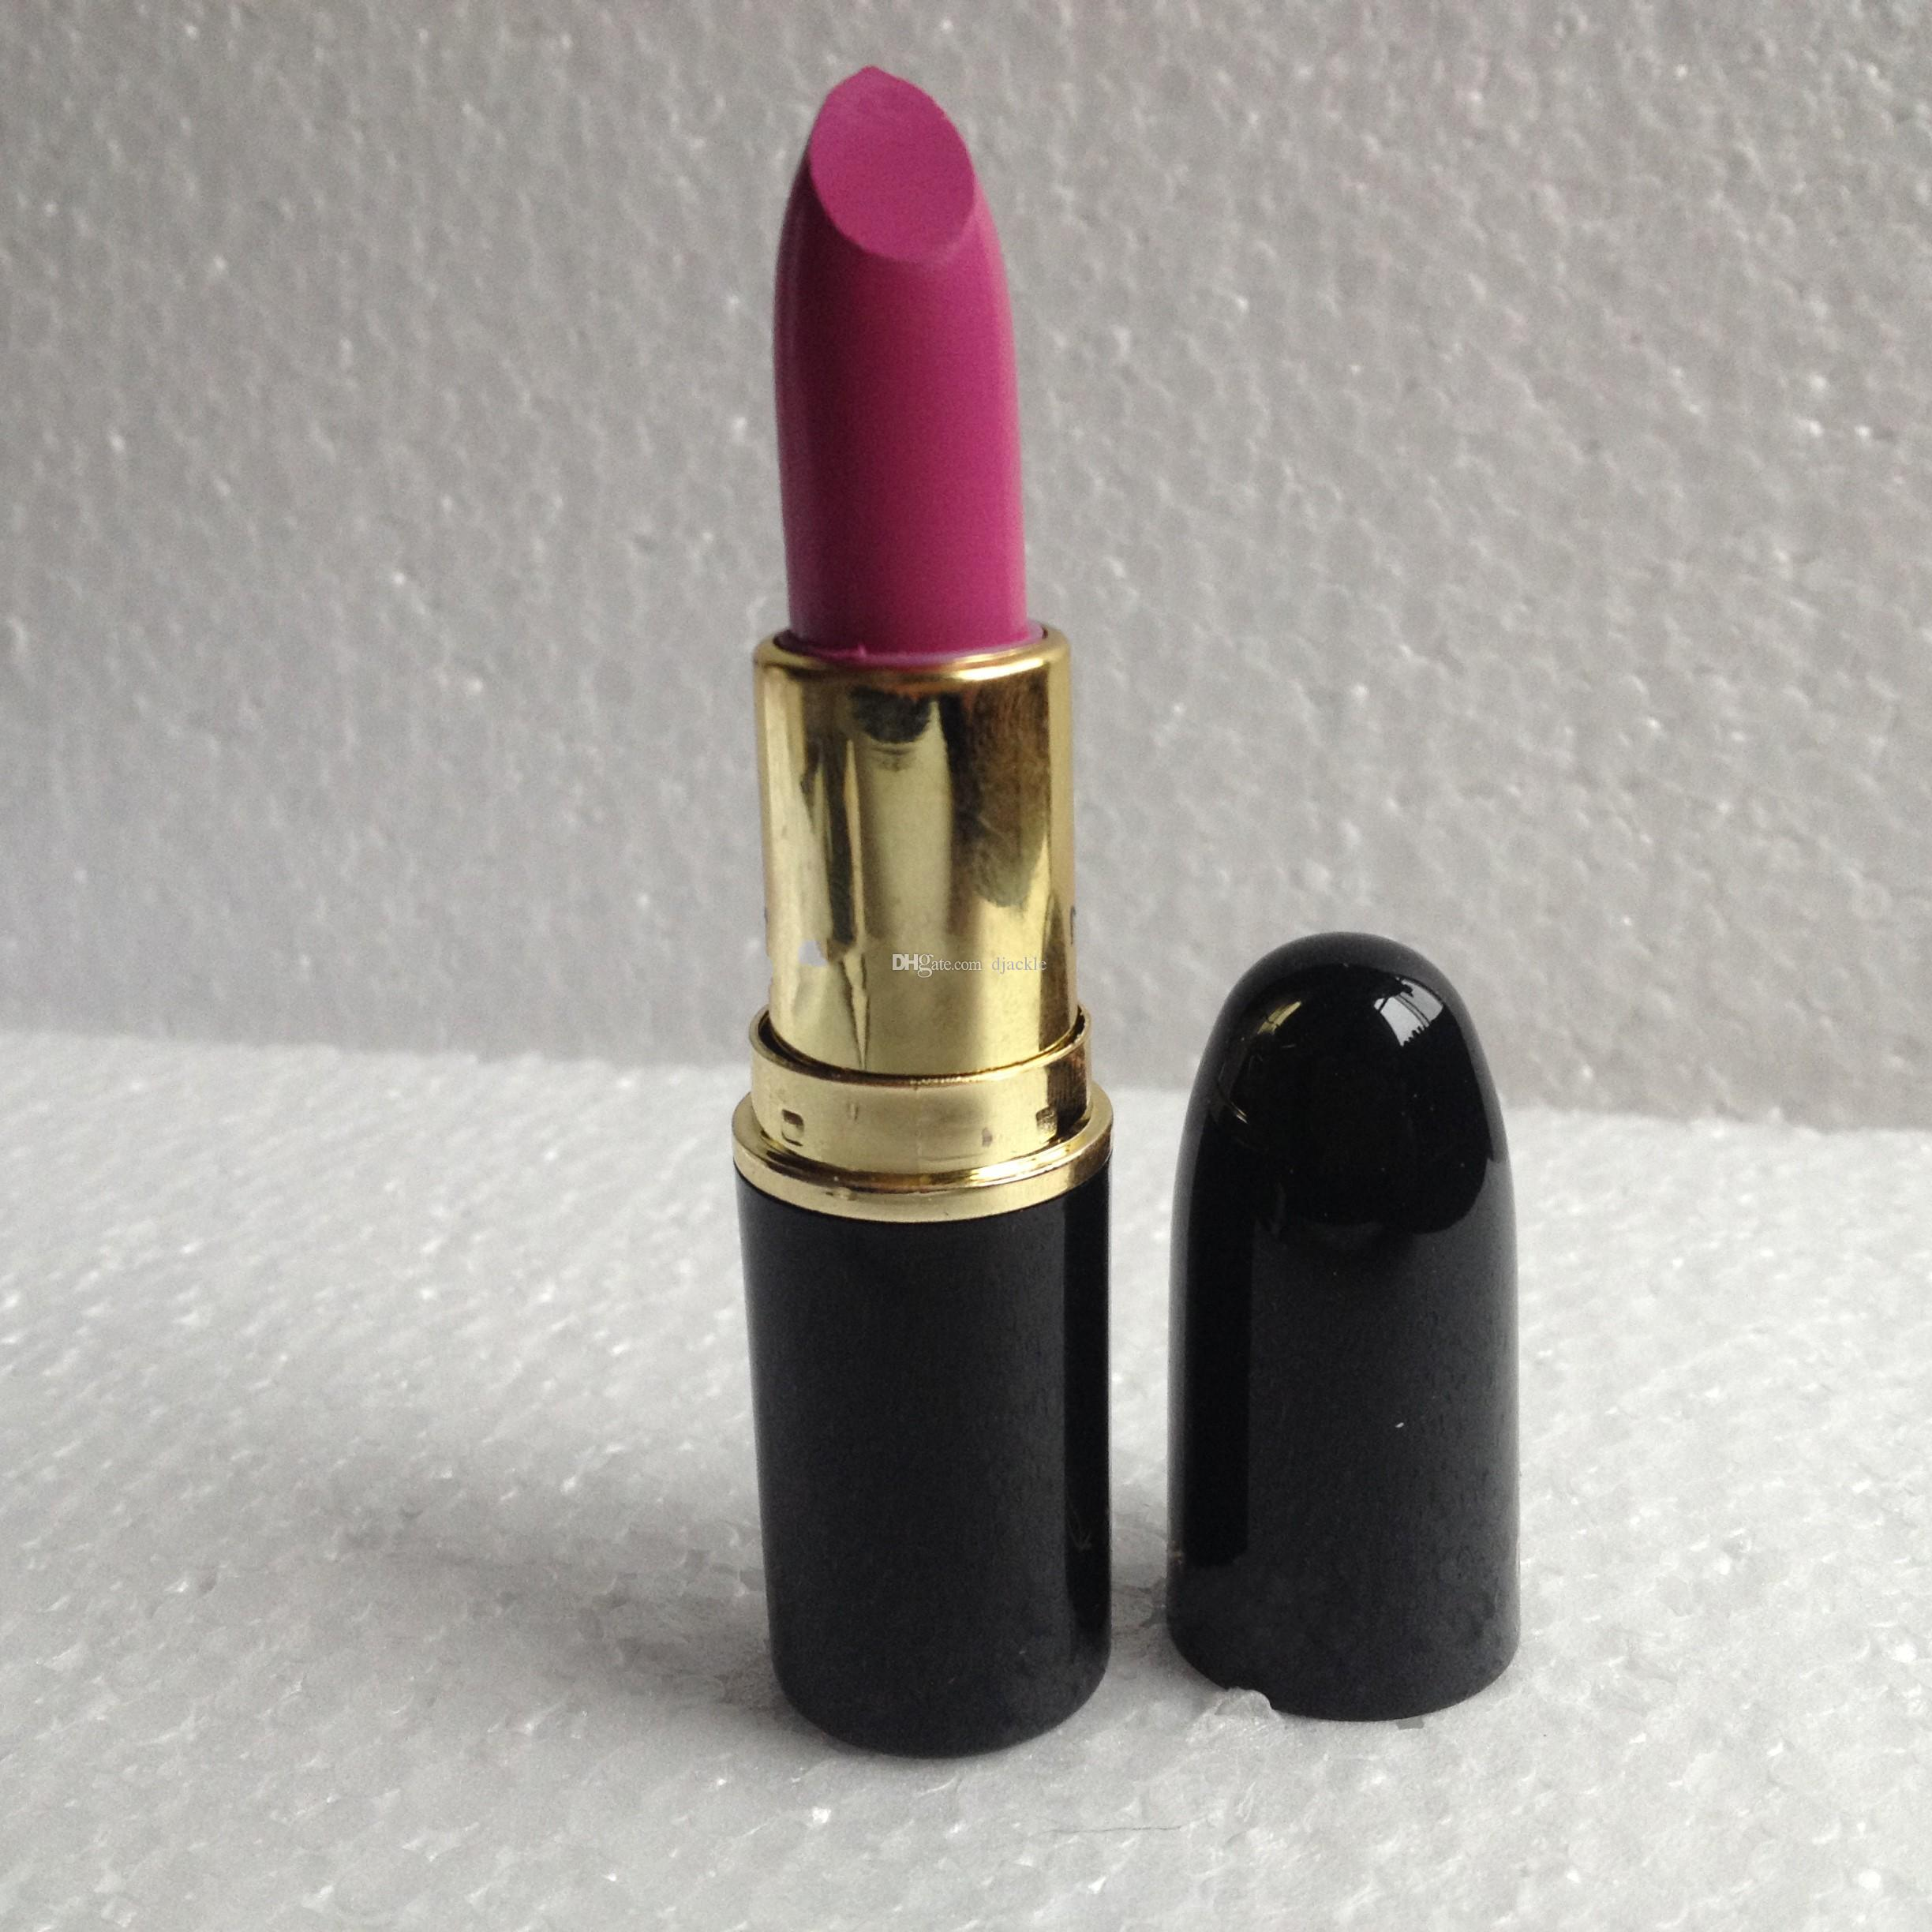 free shipping gold tube Makeup heroine Lipstick 3g A15 color